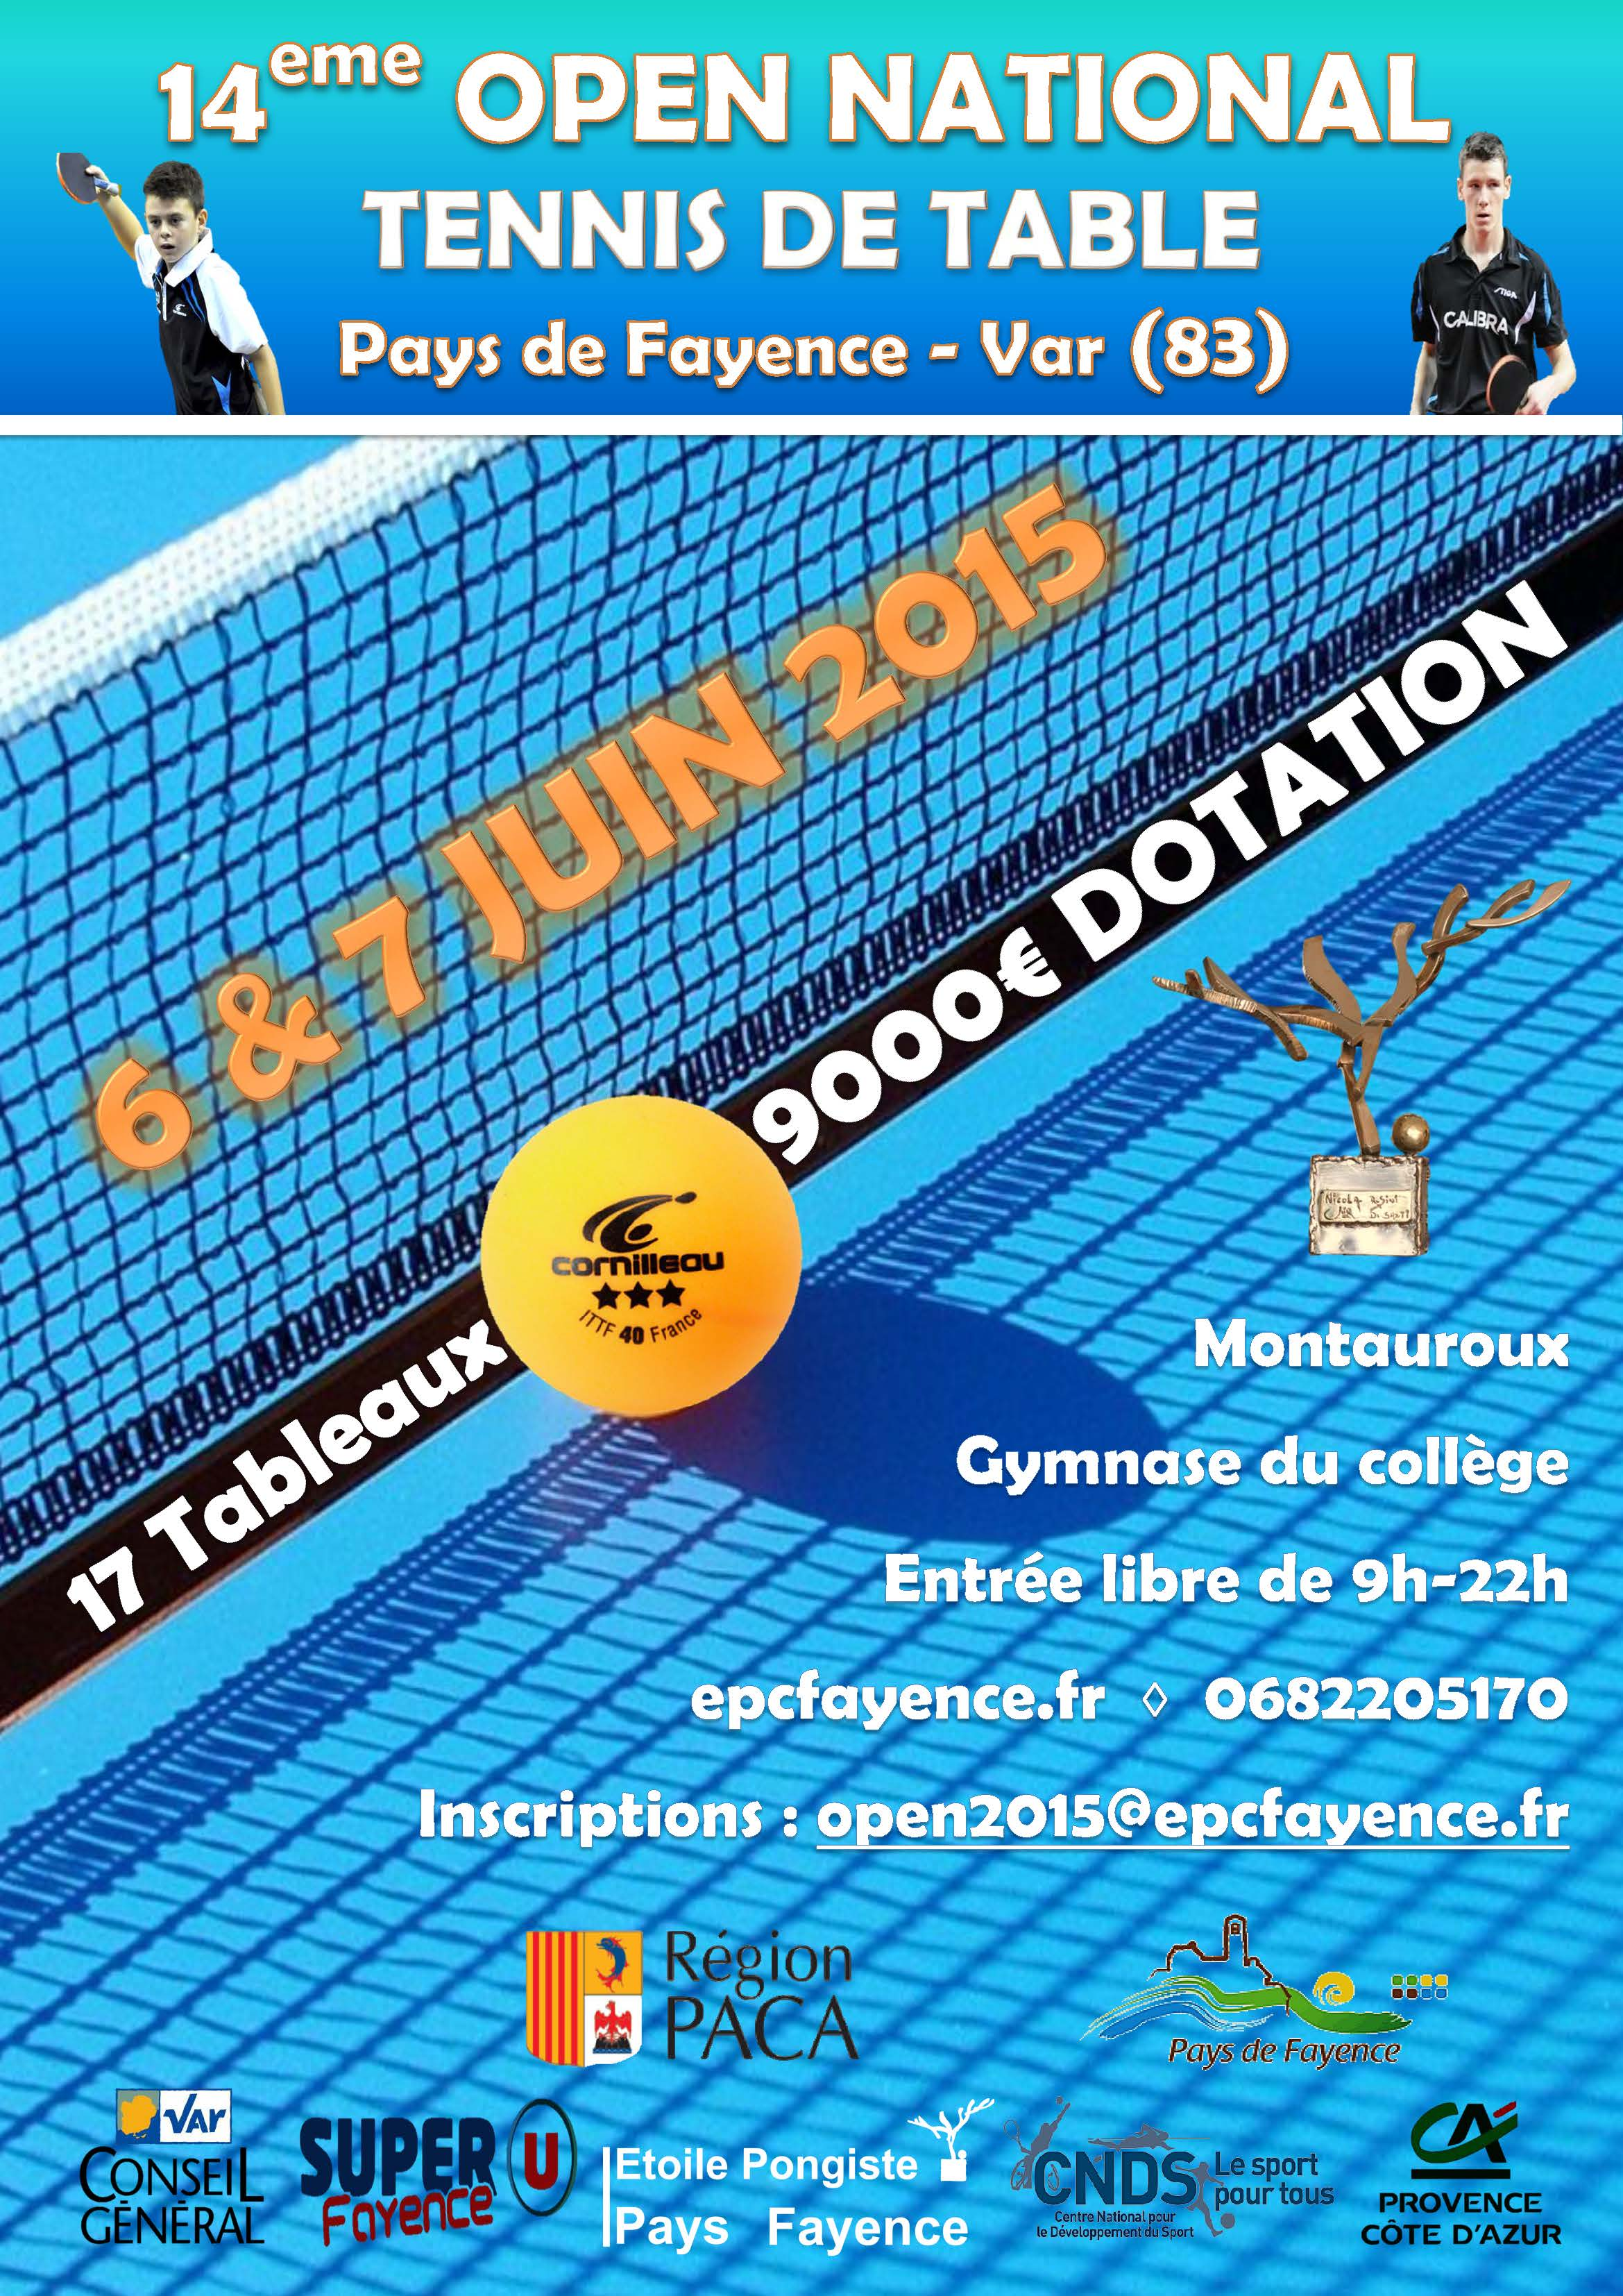 http://www.epcfayence.fr/media/uploaded/sites/884/document/554a20e0d1f97_AFFICHE2015valid.jpg